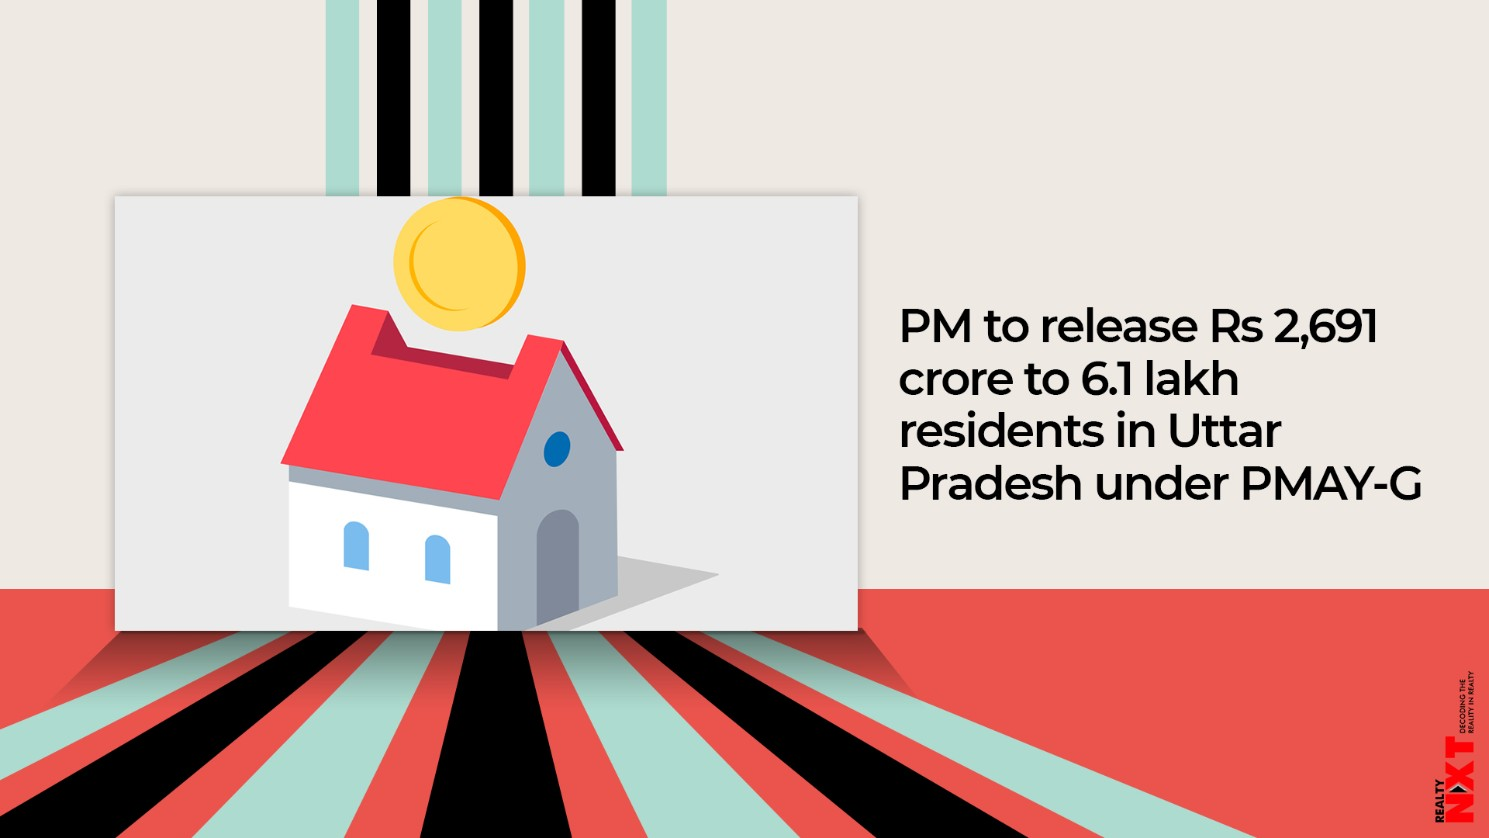 PM to release Rs 2,691 crore to 6.1 lakh residents in Uttar